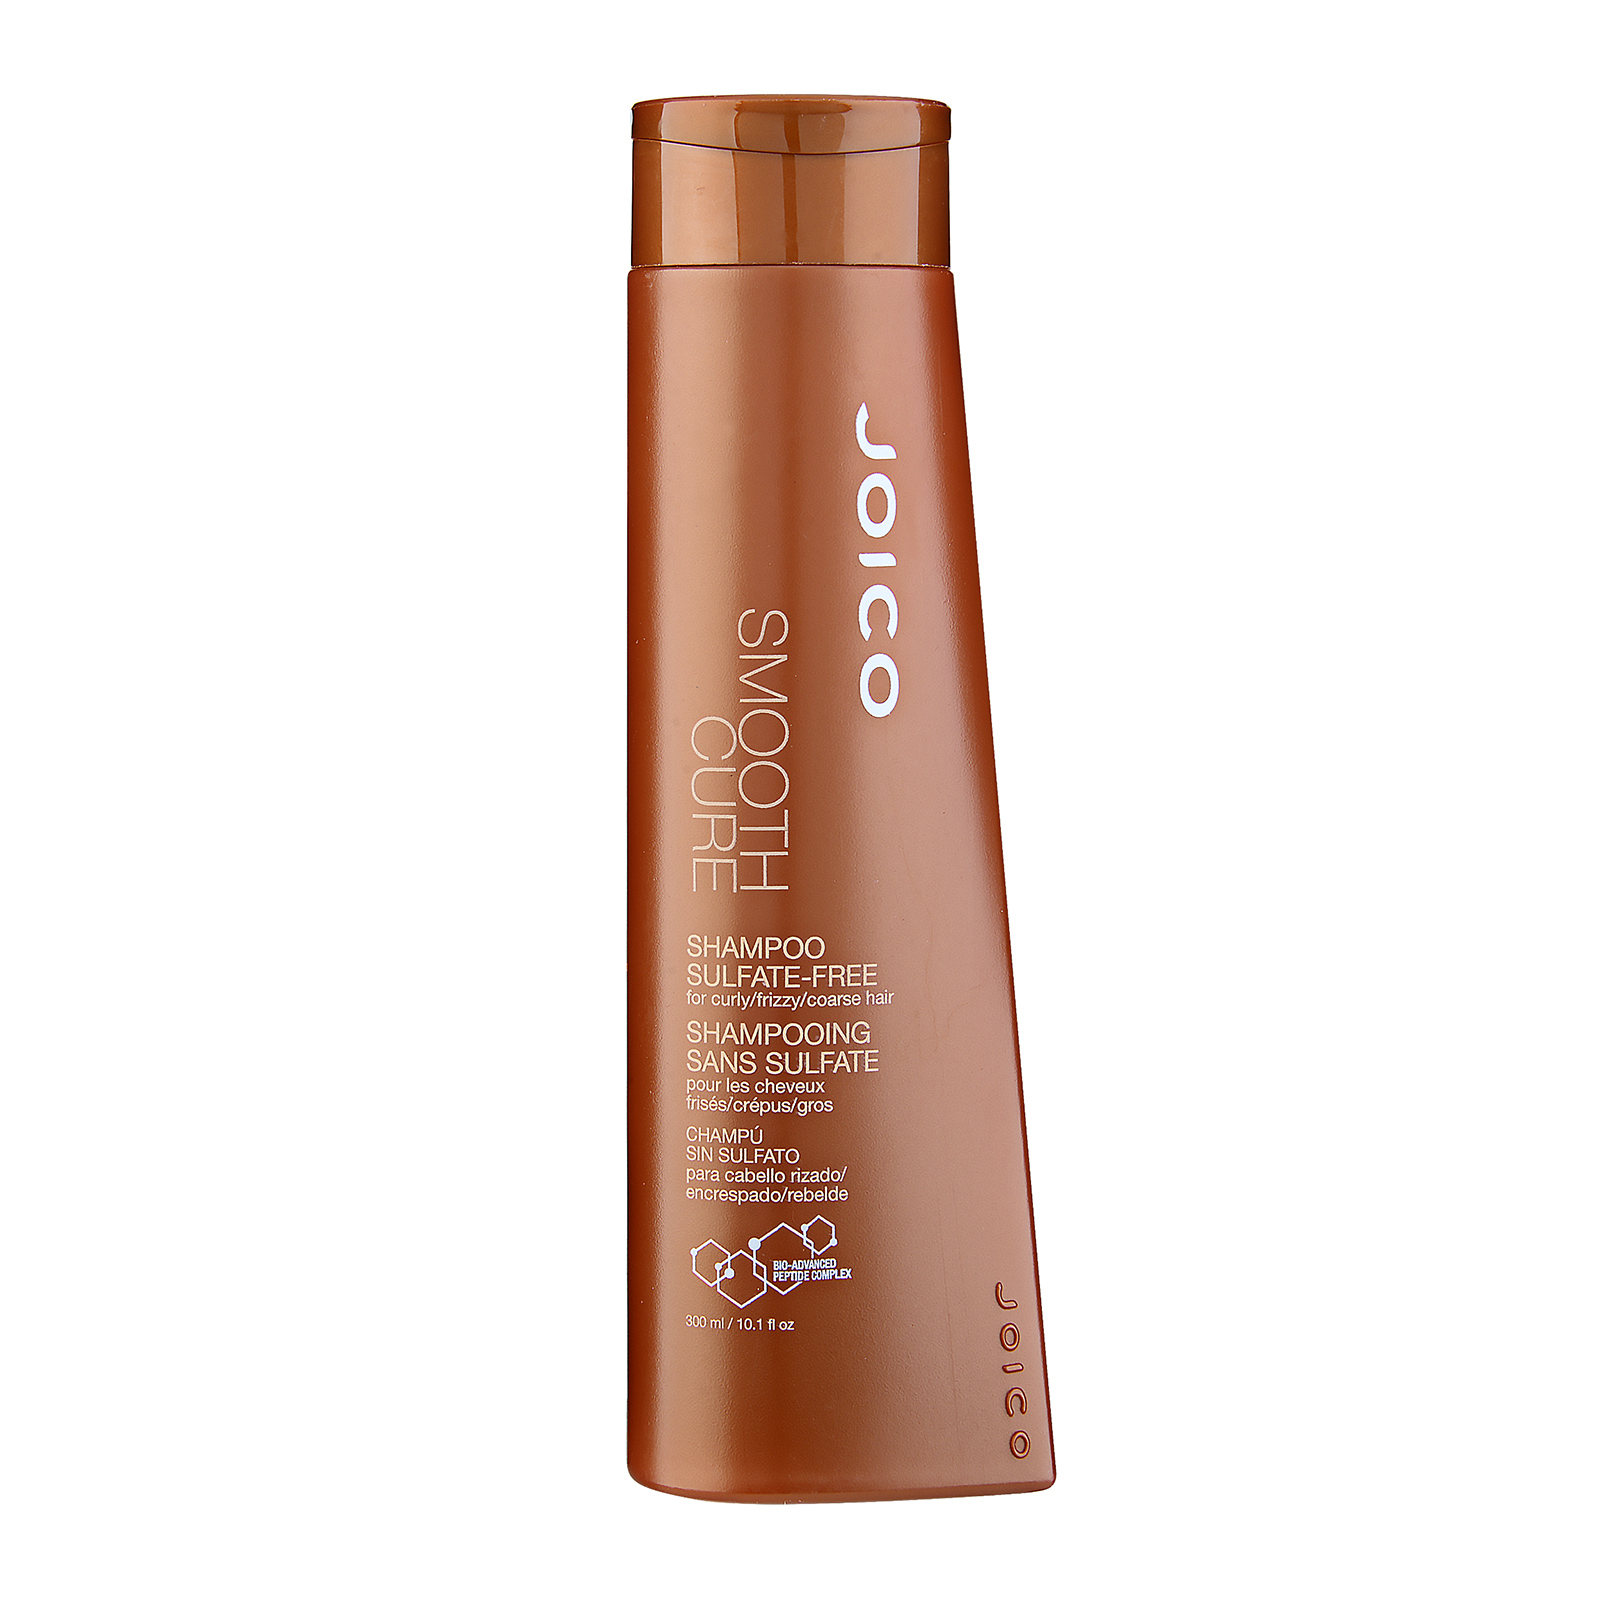 Joico Smooth Cure Sulfate-Free Shampoo 10.1oz, 300ml